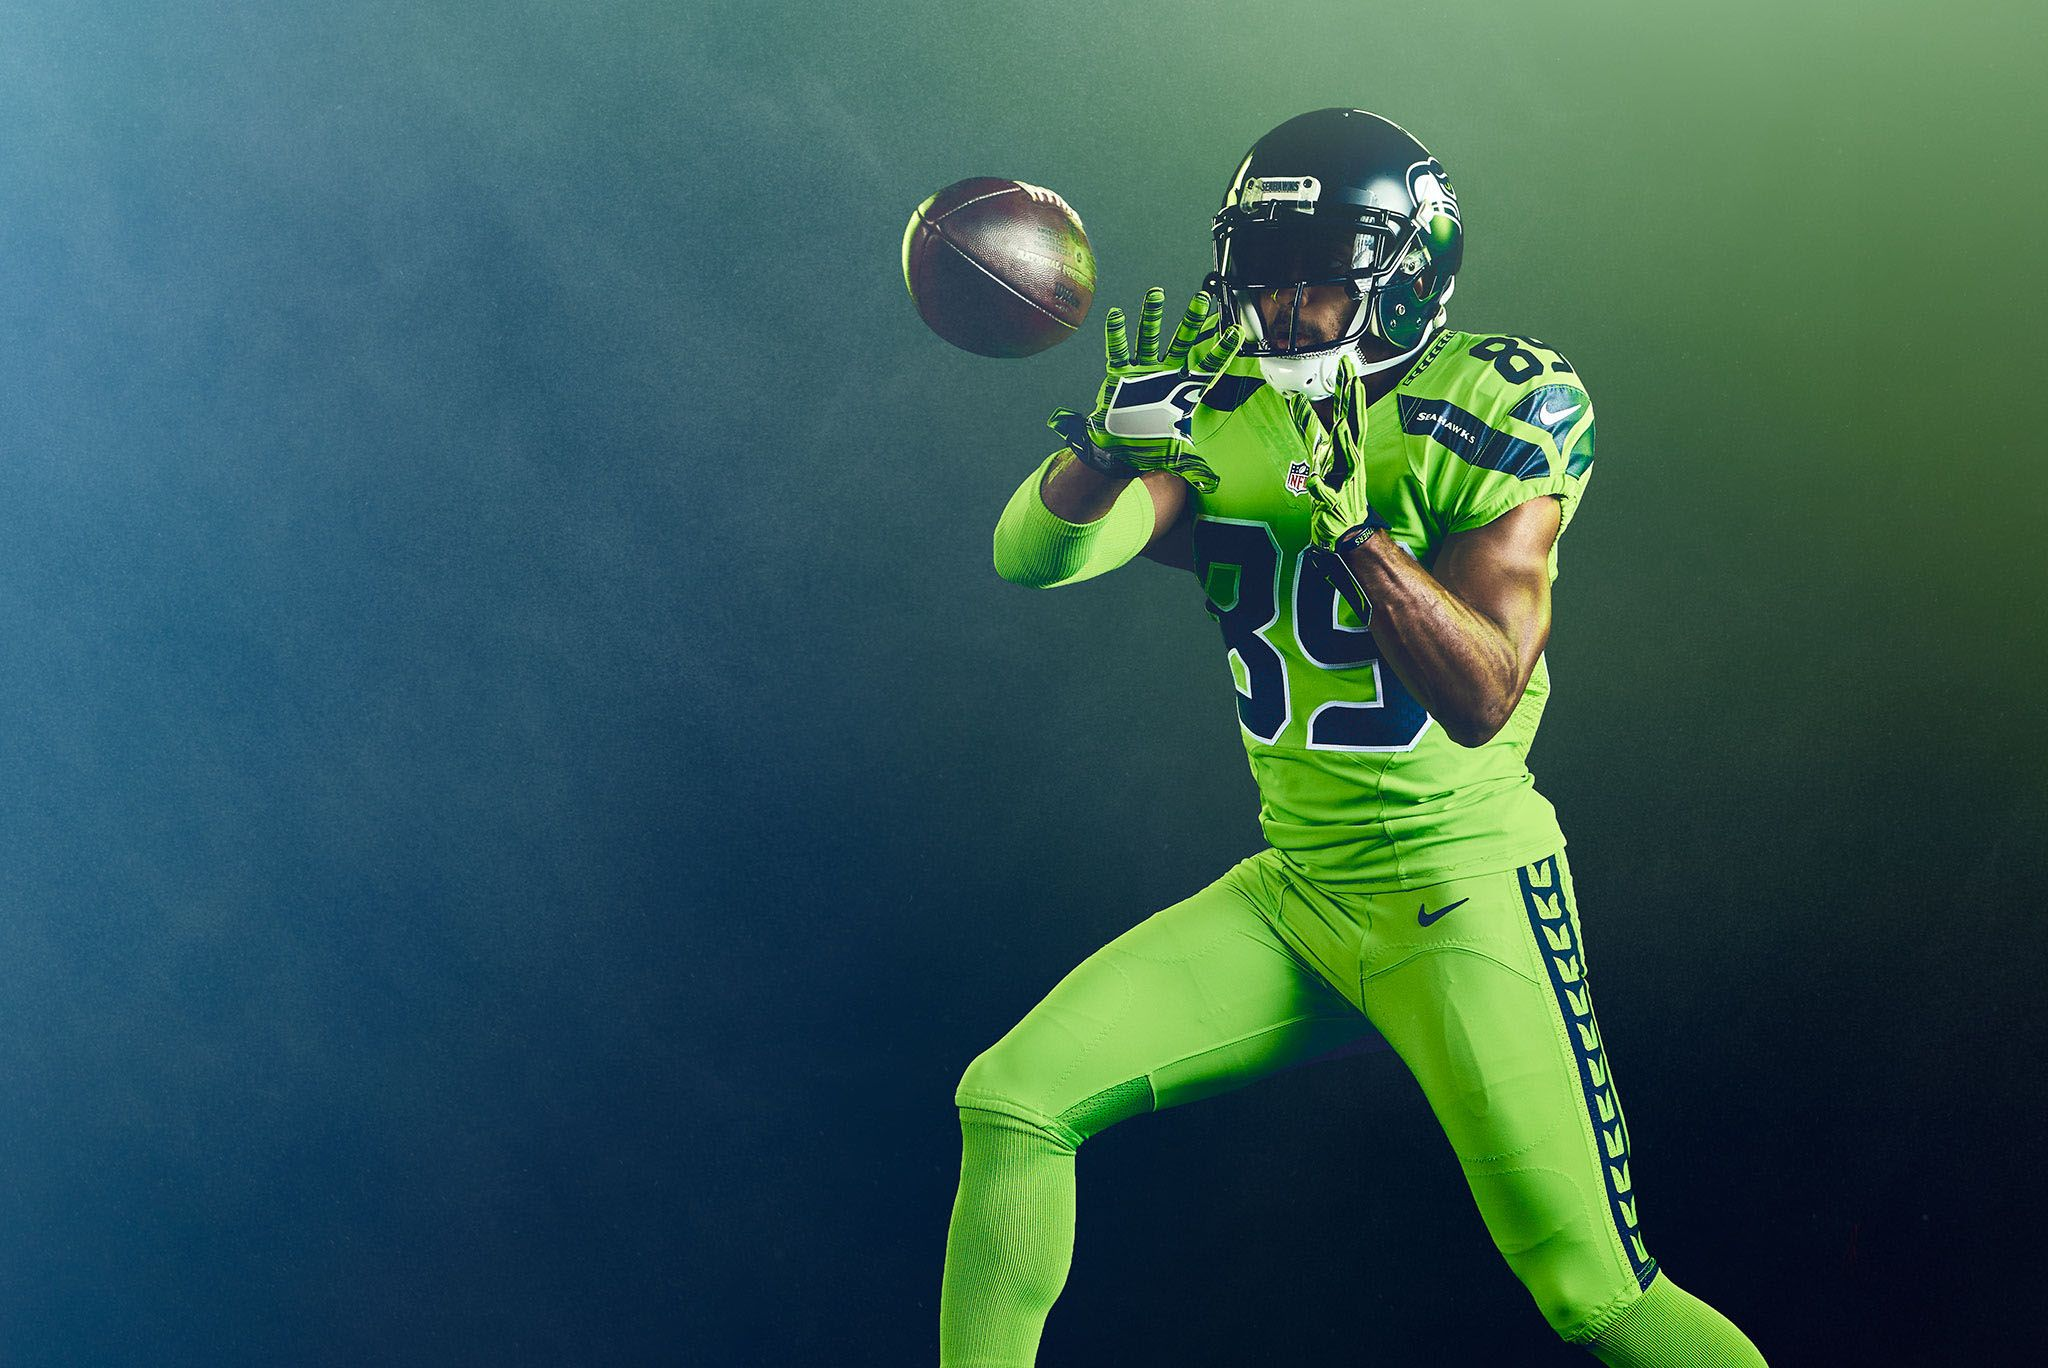 timeless design edf7b 5e08e Seattle Seahawks - Color Rush on Behance | Creative ...